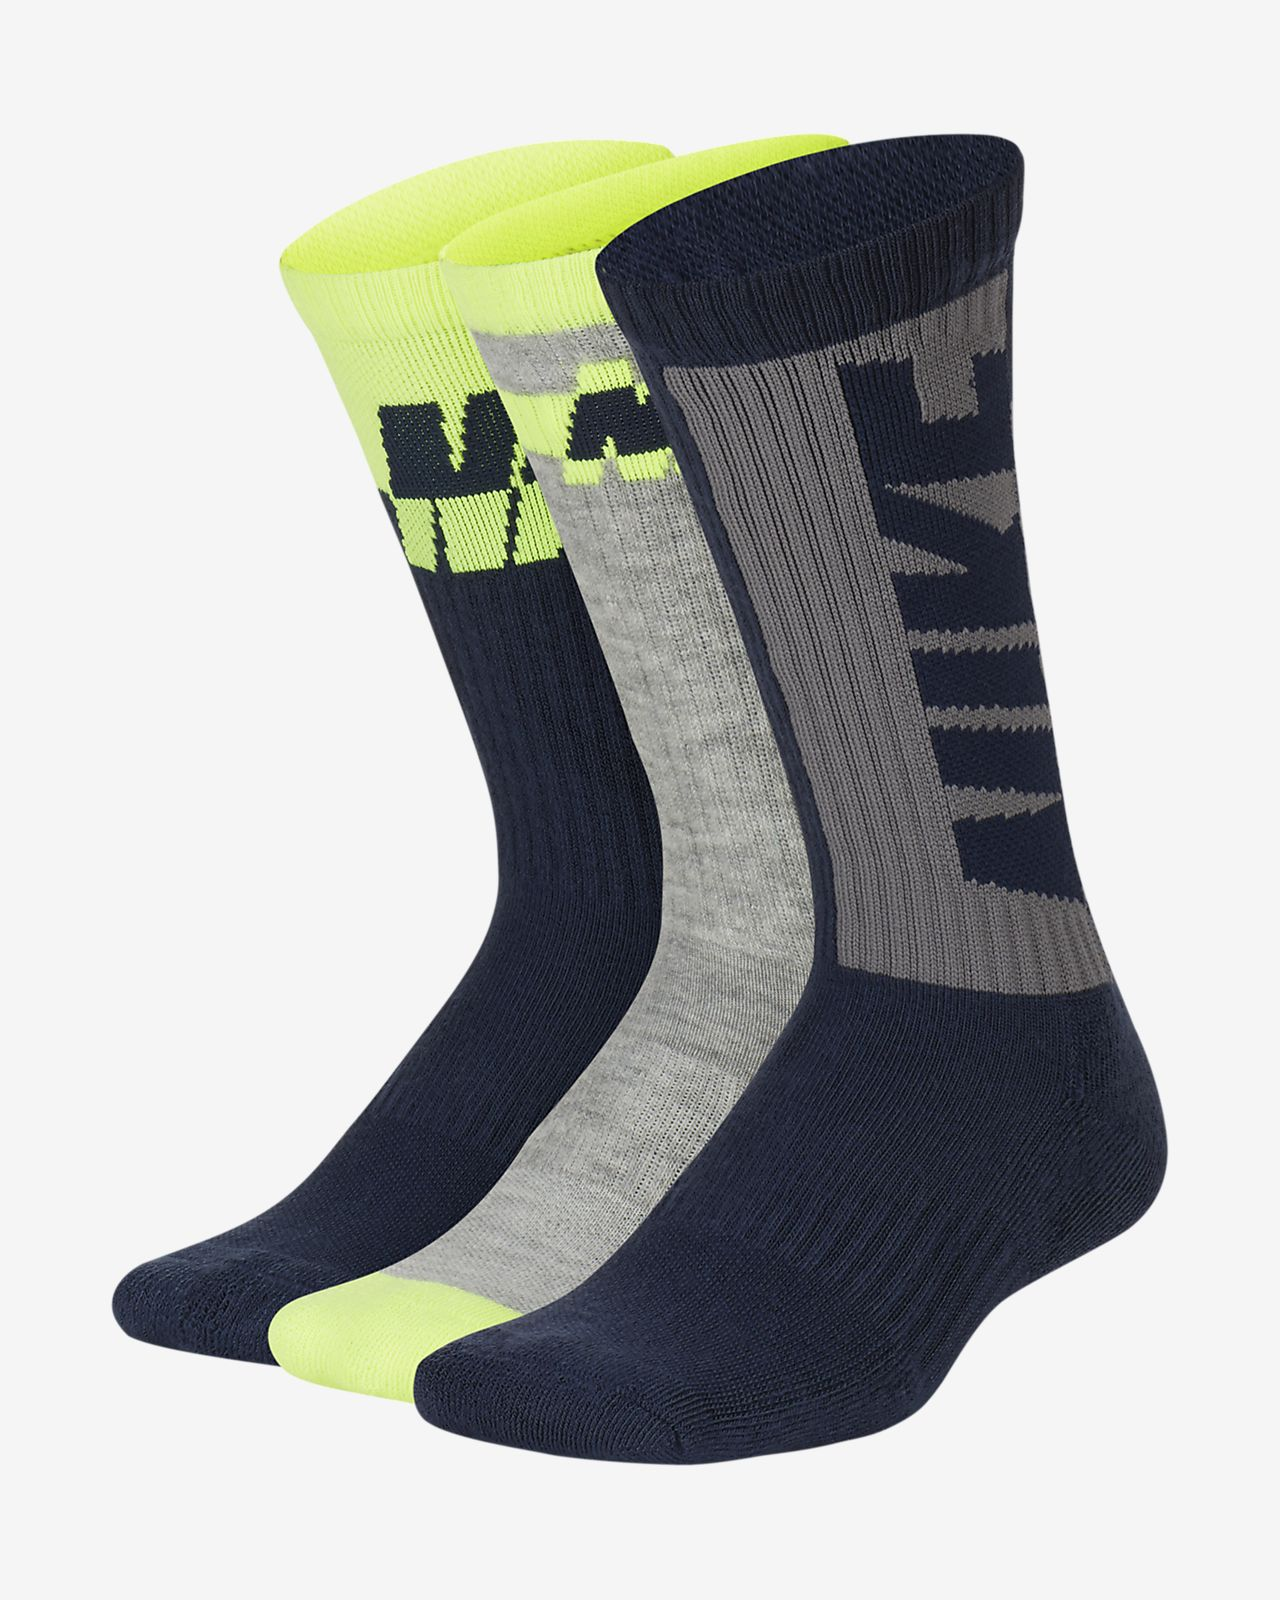 Nike Everyday Big Kids' Cushioned Crew Socks (3 Pairs)